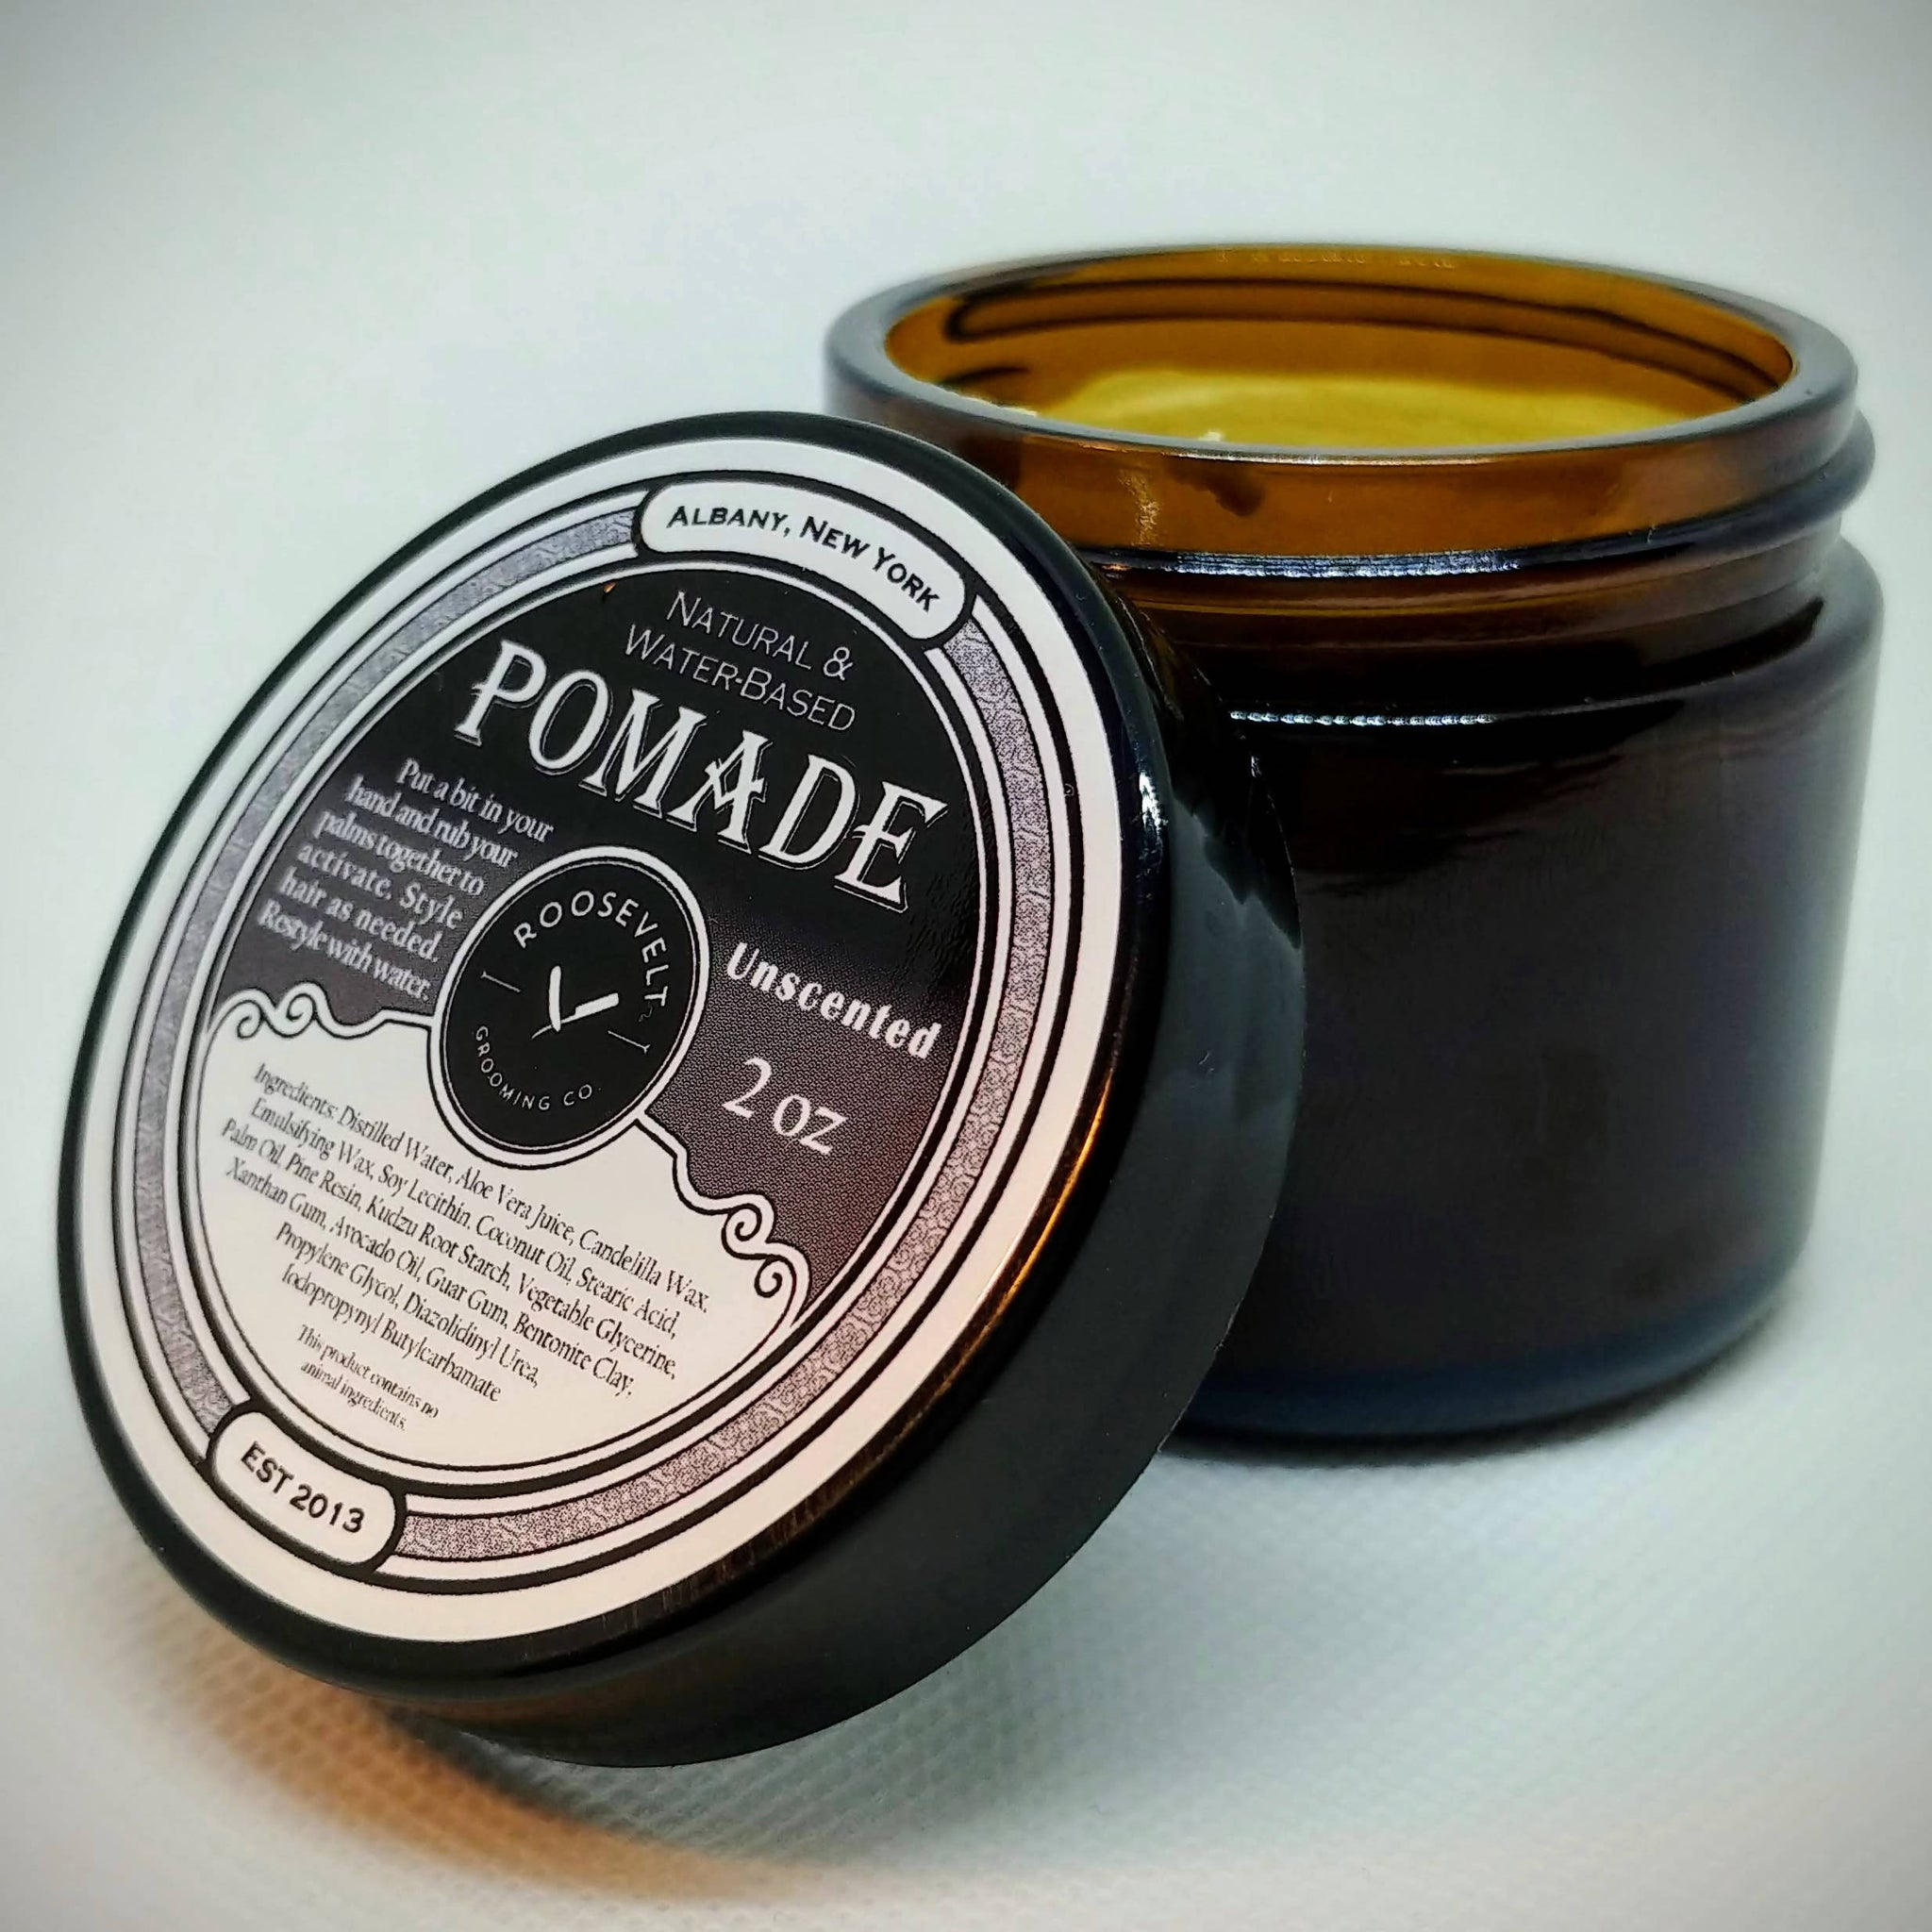 Pomade Hair Paste: Water-Based, Natural, Petroleum-Free and Vegan too! - Medium Hold